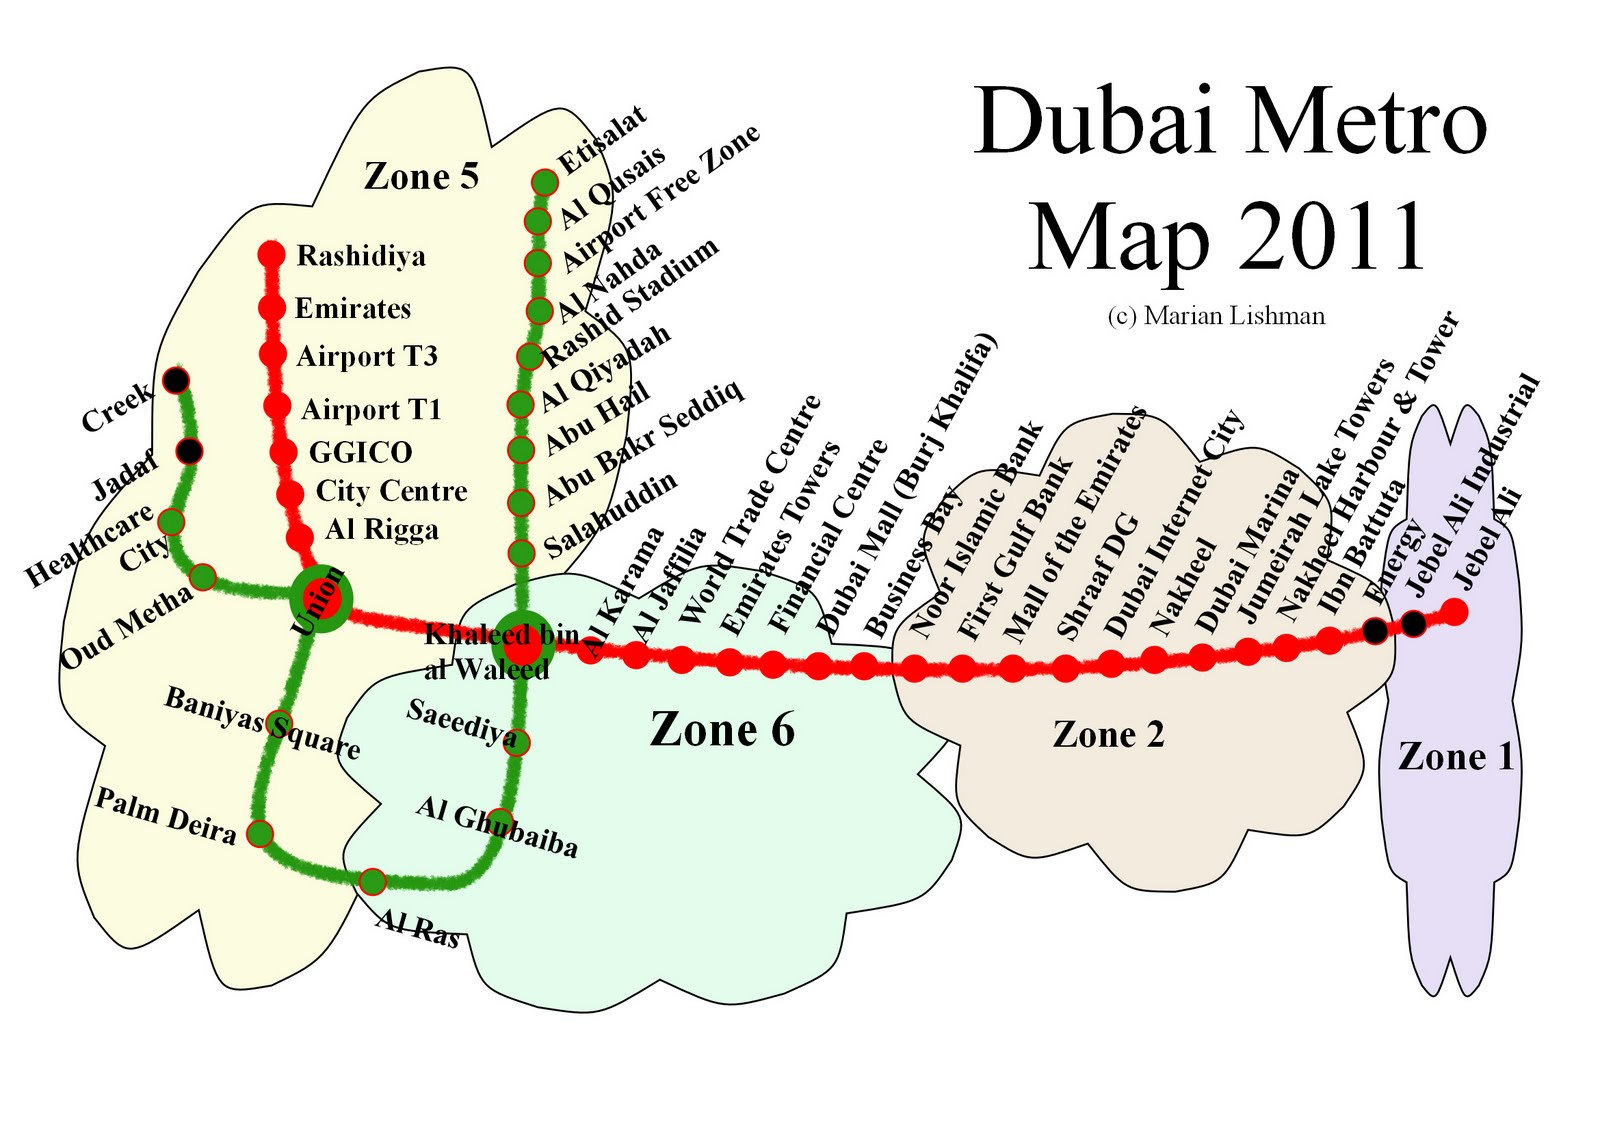 Dubai Metro Blog: Dubai Transport Zones Increase From 5 to 7